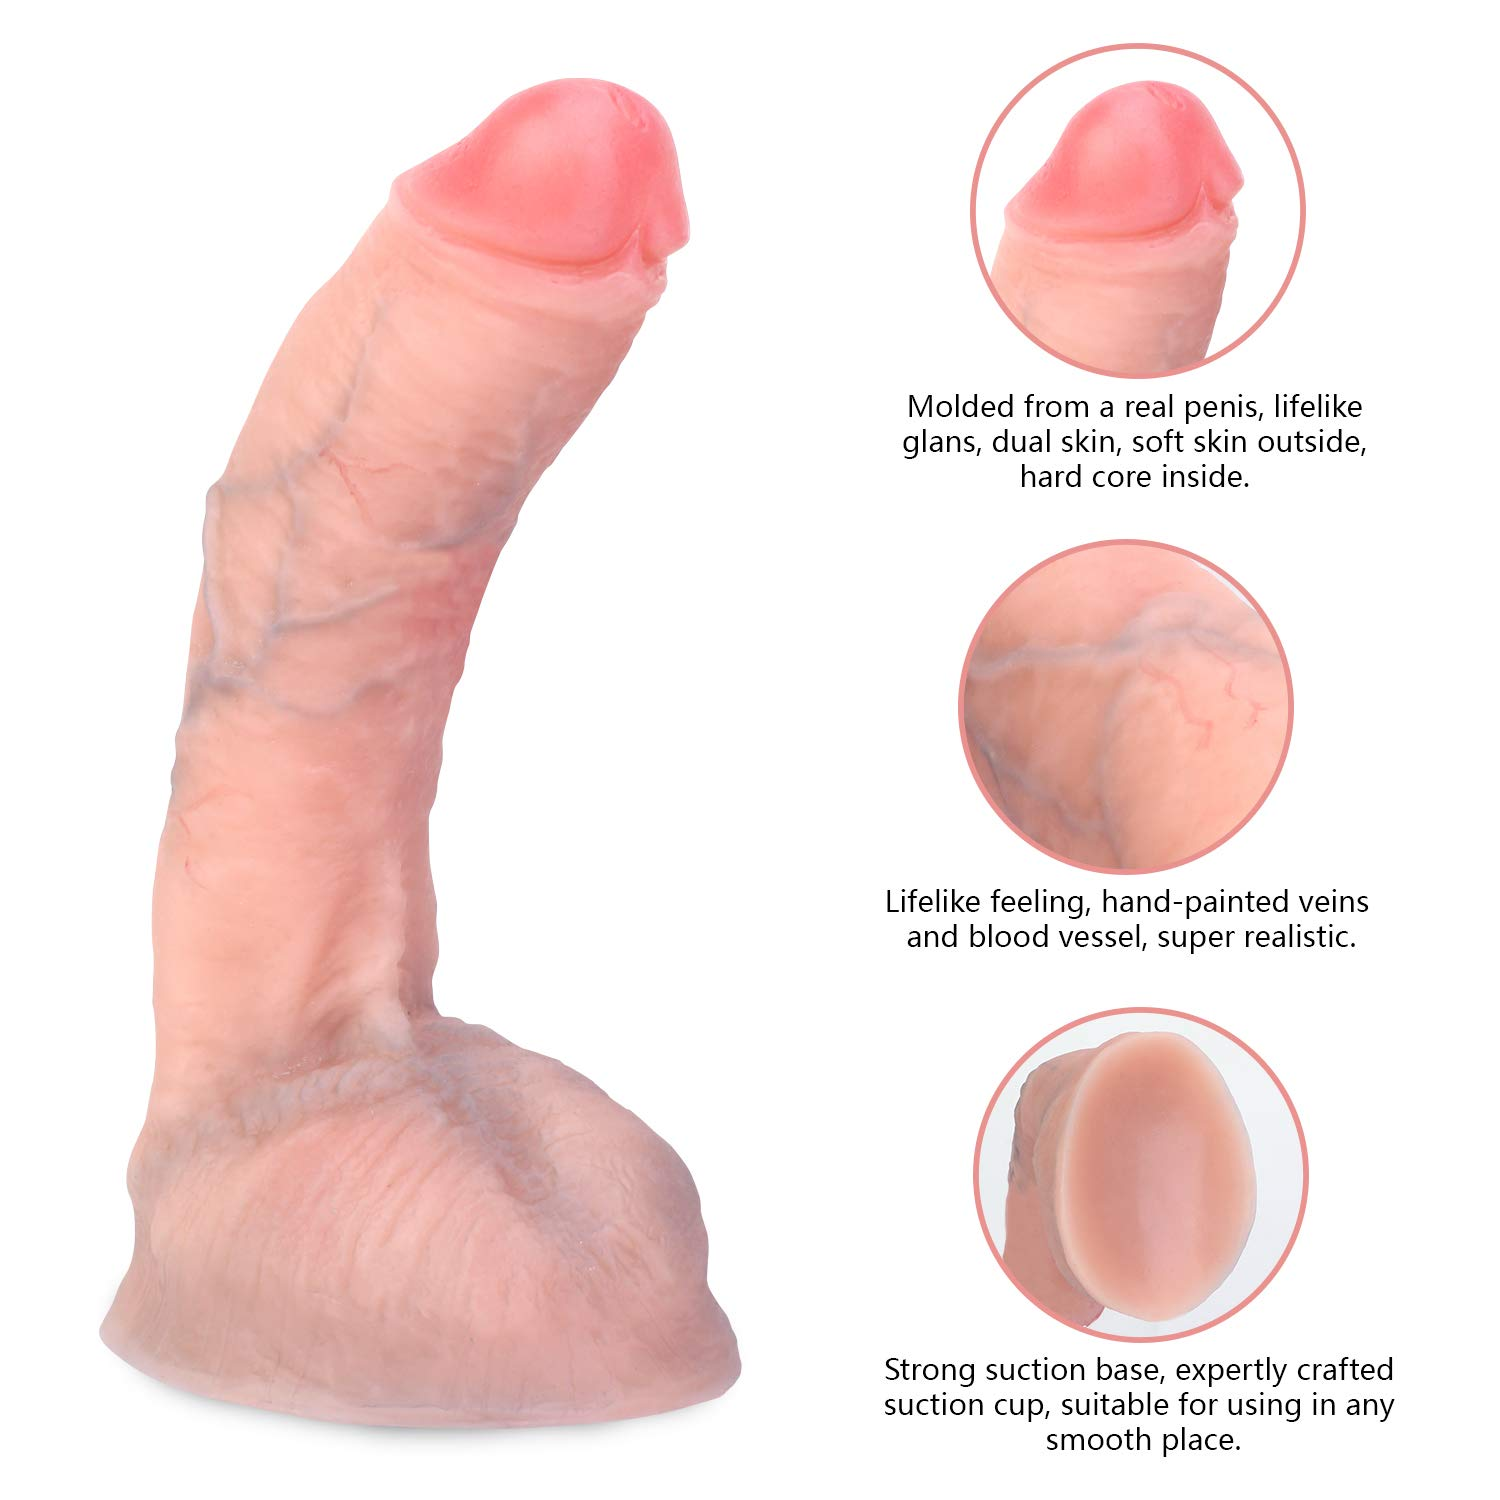 Hyper Realistic Ultra-soft silicone Dildo Lifelike Vein Superior Penis Dual Layer Liquid Silicone Bendable Penis with Suction Cup Adult Sex Massage Masturbation Toys for Women 8.8 inch (Natural Flesh) by Being Fetish